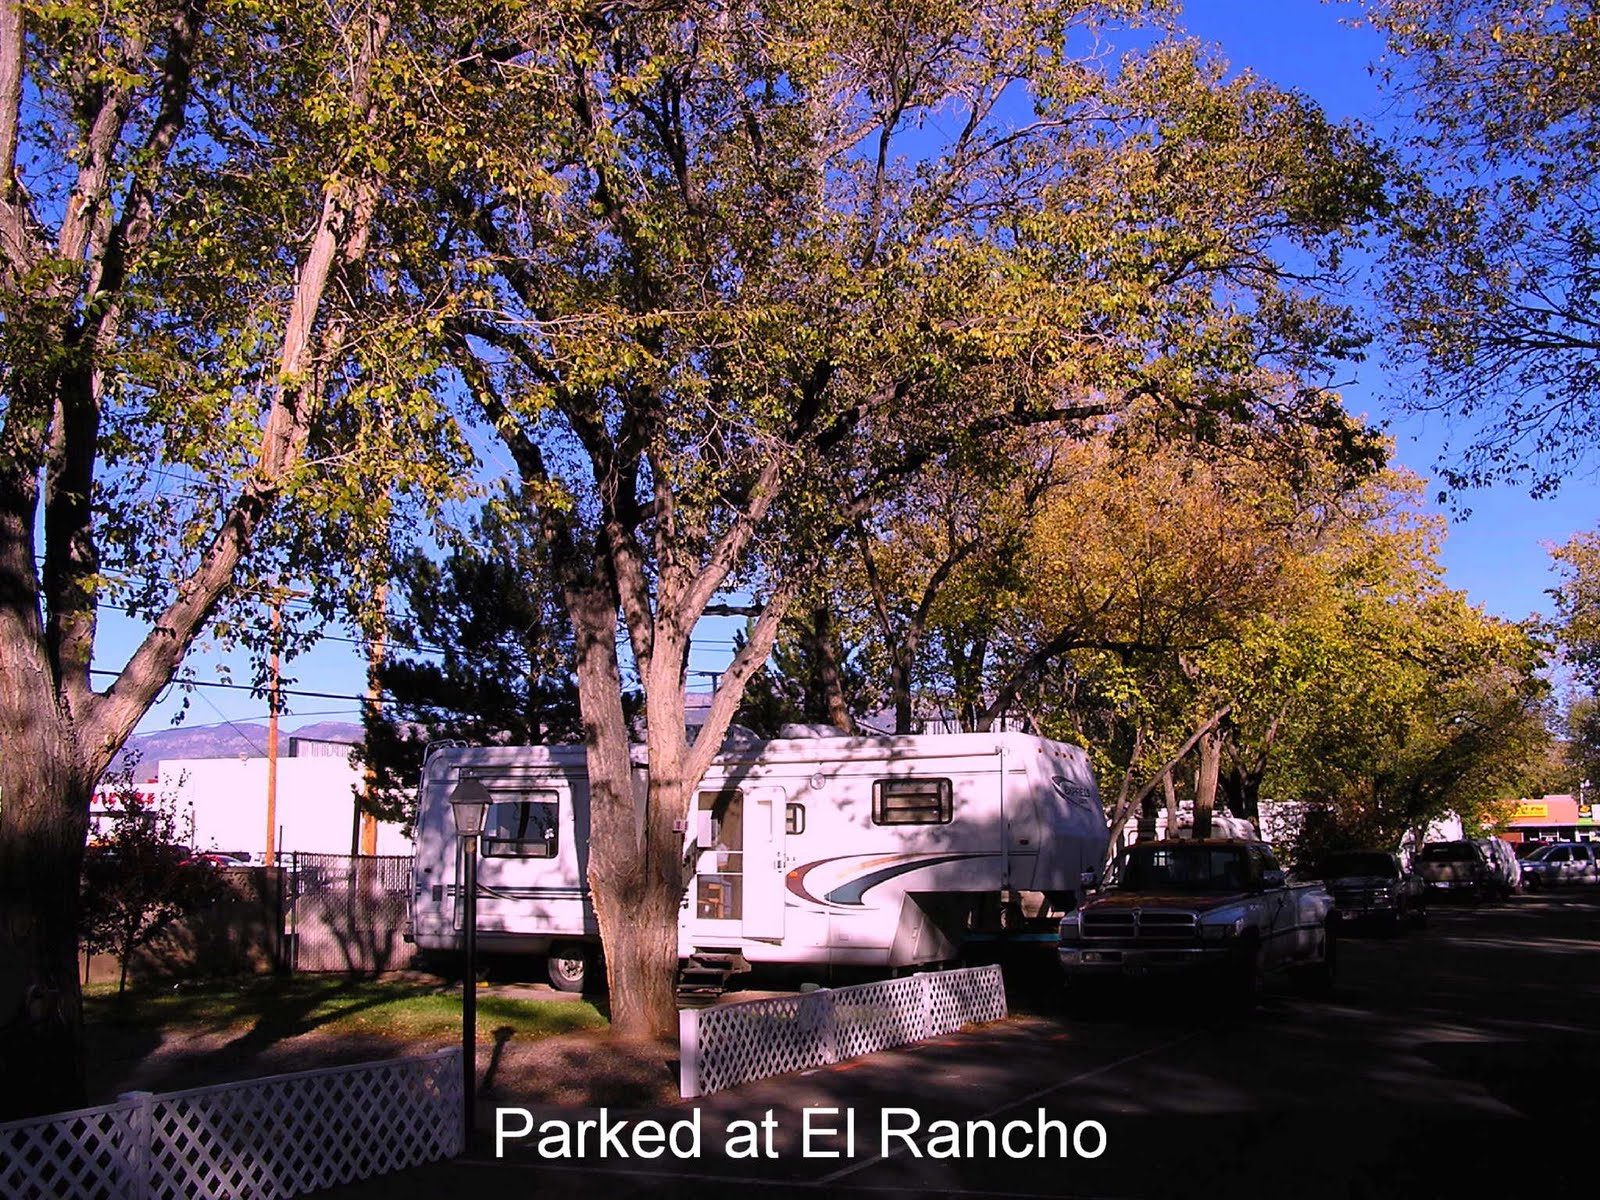 El Rancho Mobile Home Park Albuquerque NM Nov 1 Jan